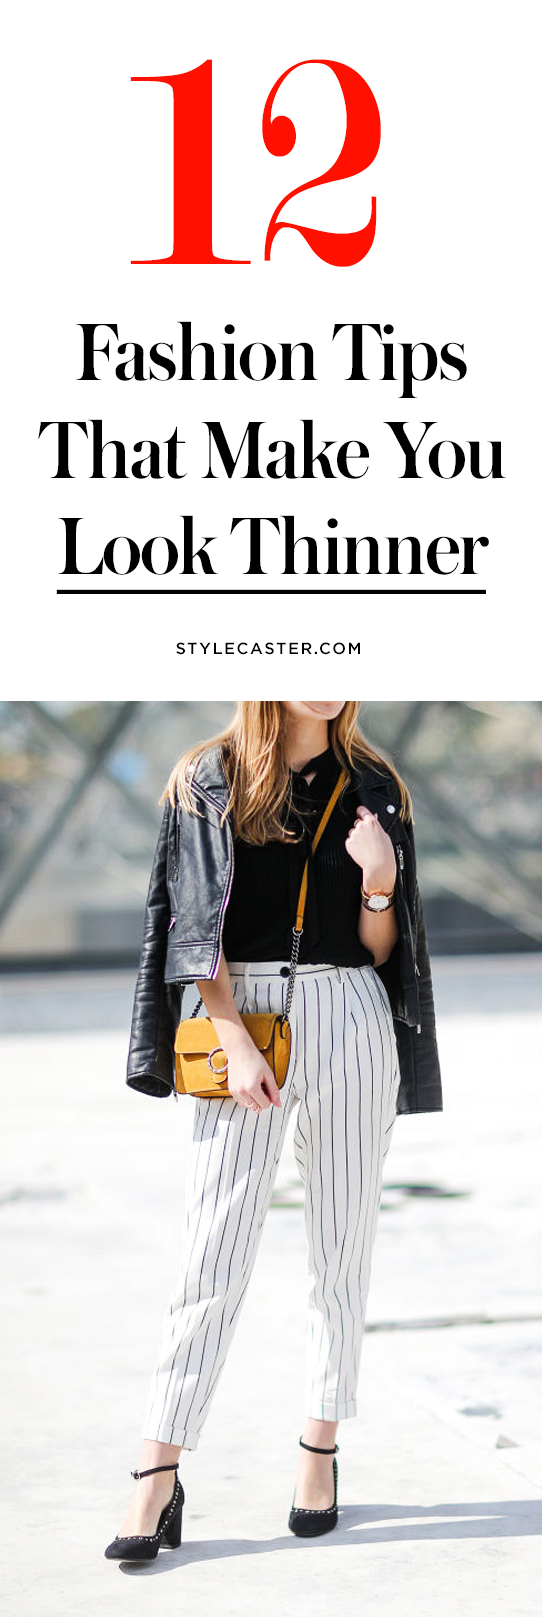 12 Fashion + Styling Tricks That'll Make You Look Thinner — Here's how to put together slimming outfits like a celebrity stylist | @stylecaster